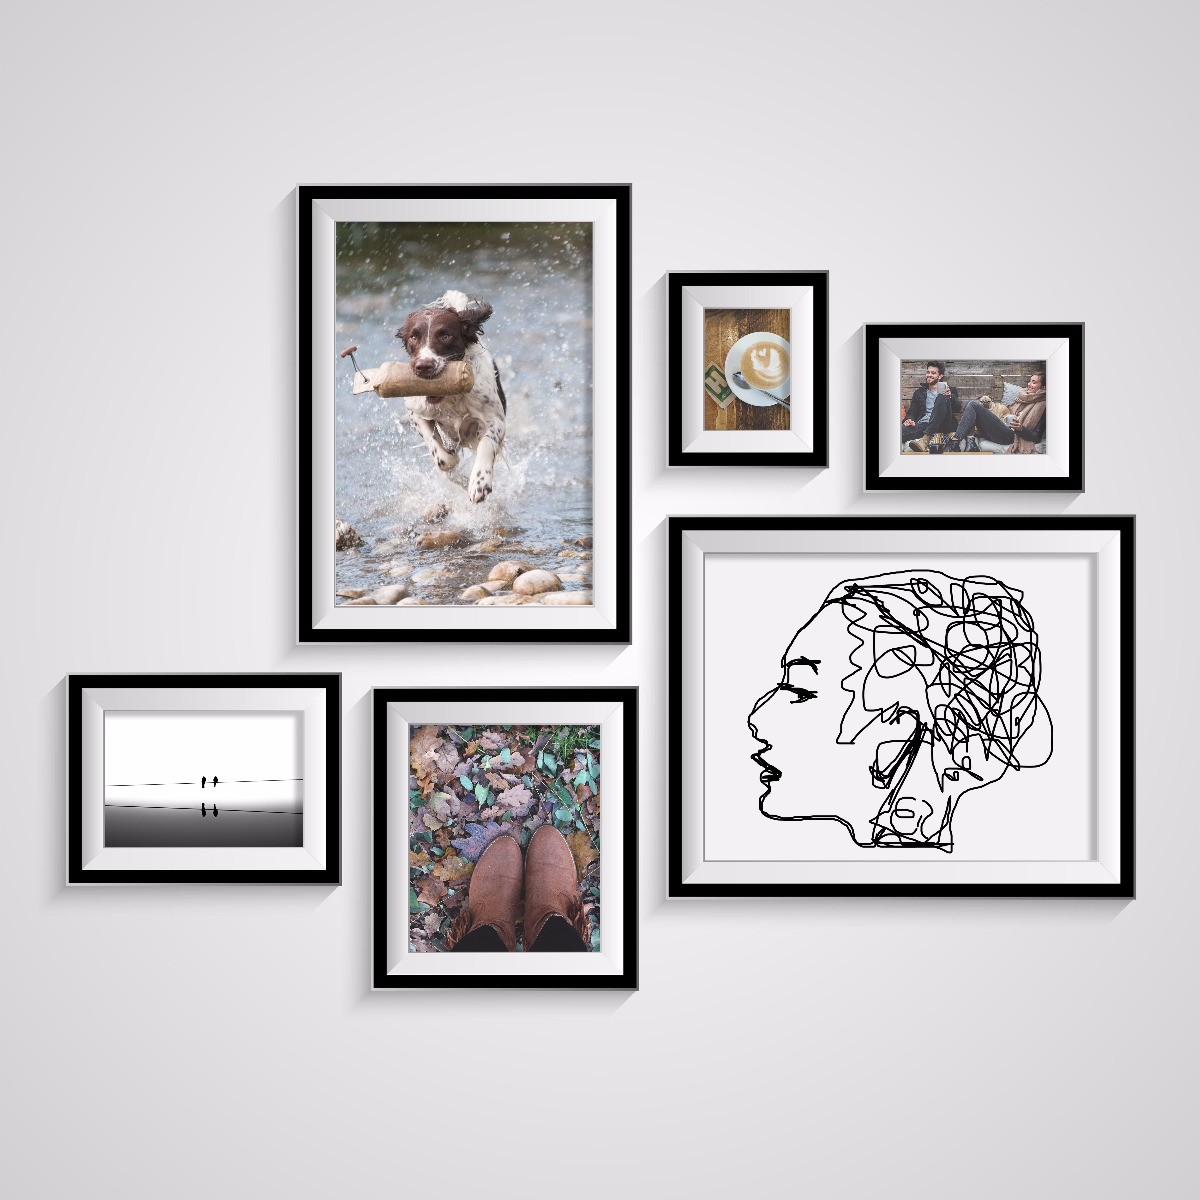 Calm Yourhome Or Our Large Inventory Frames Is Sure To Have Frames Custom Frames Our Frames Are Just Size To Start A Gallery Wall photos 8 X 10 Frames